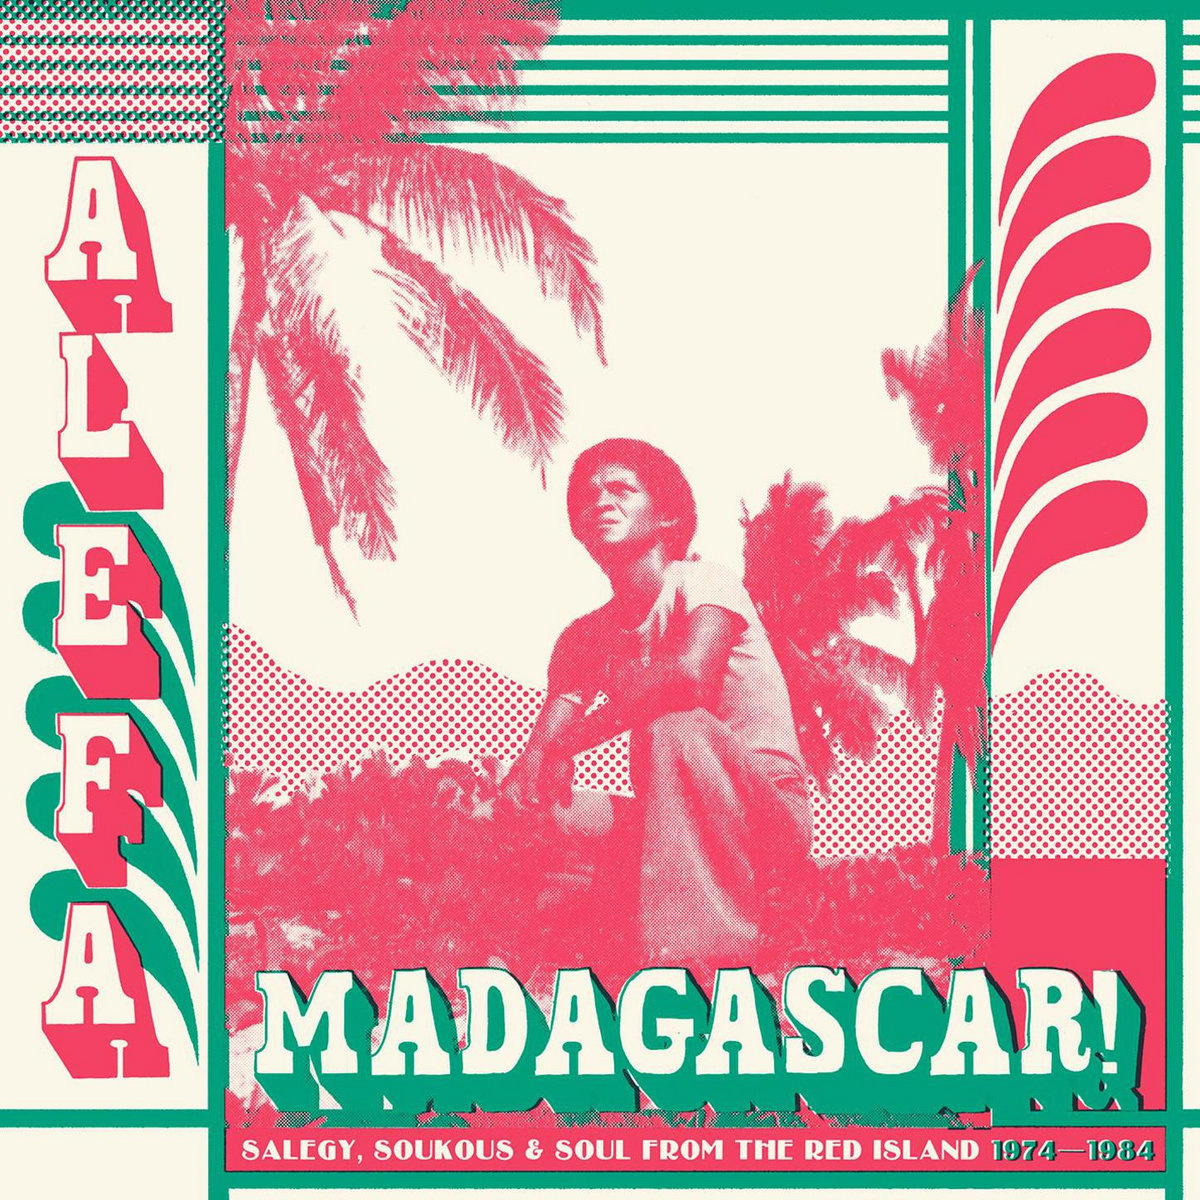 Alefa Madagascar!: Salegy, Soukous and Soul from the Red Island 1974-1984